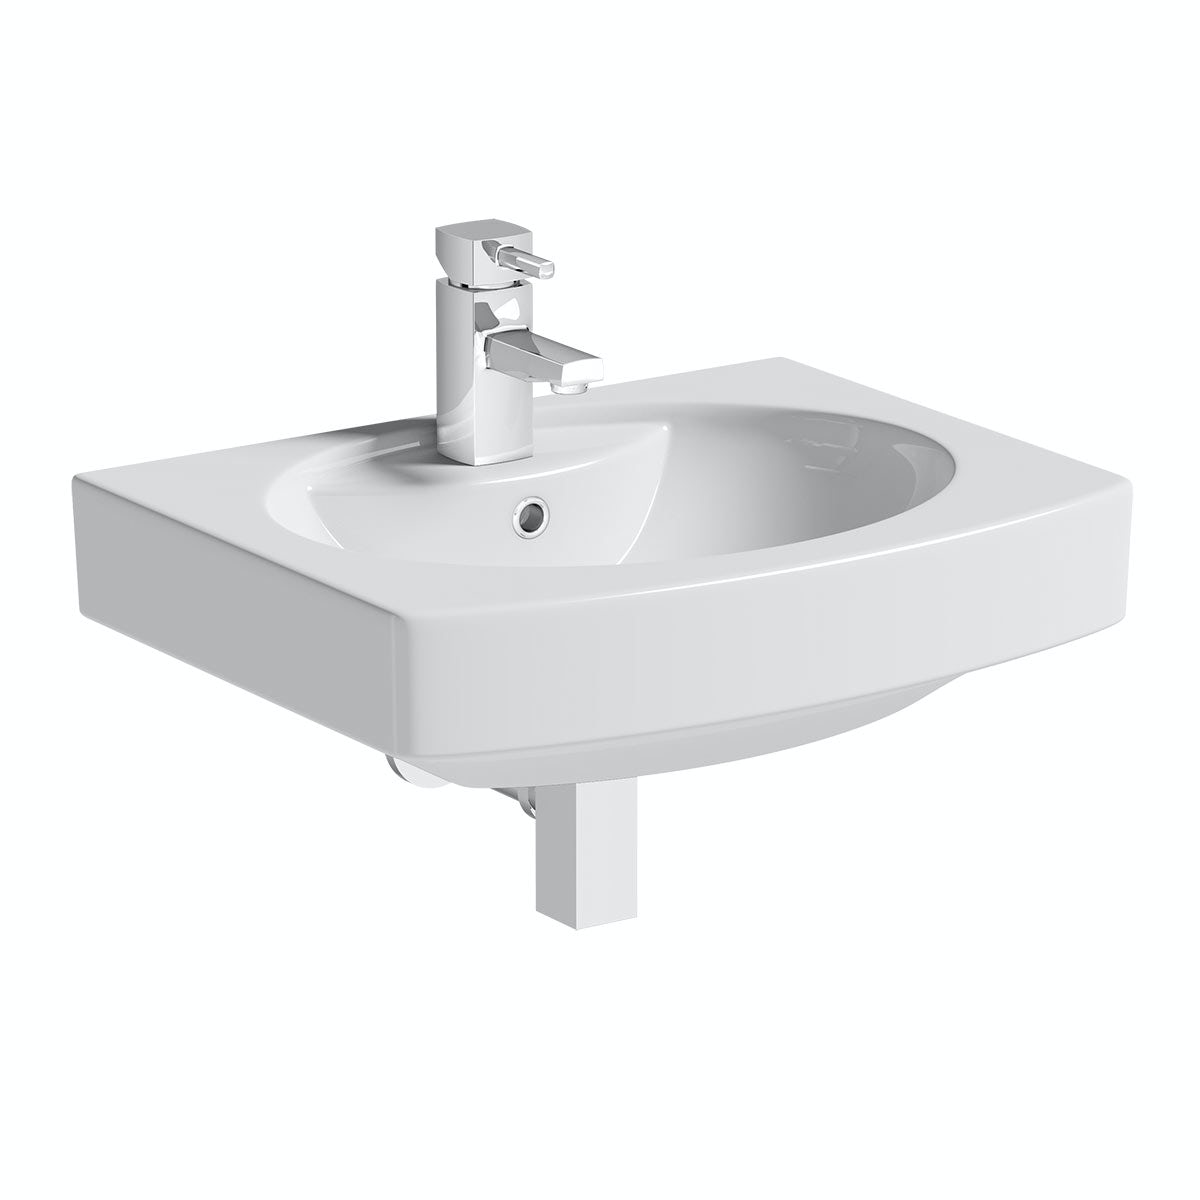 Orchard Wye 1 tap hole wall hung basin 555mm